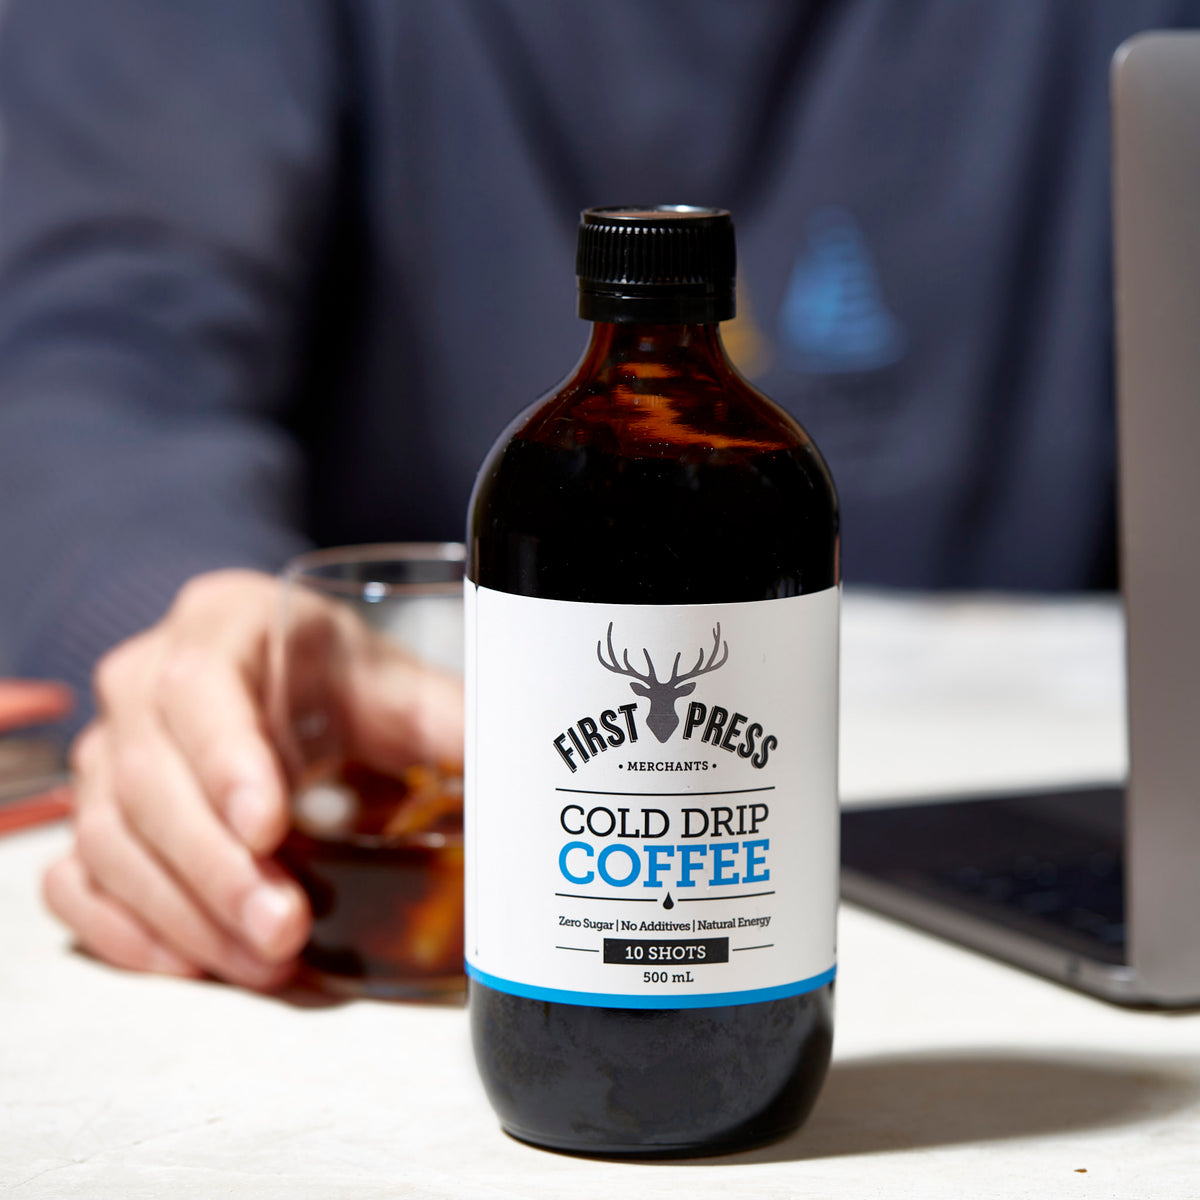 First Press Coffee - Big Boy 500m Cold Drip Coffee - Bottle sitting on desk next to laptop